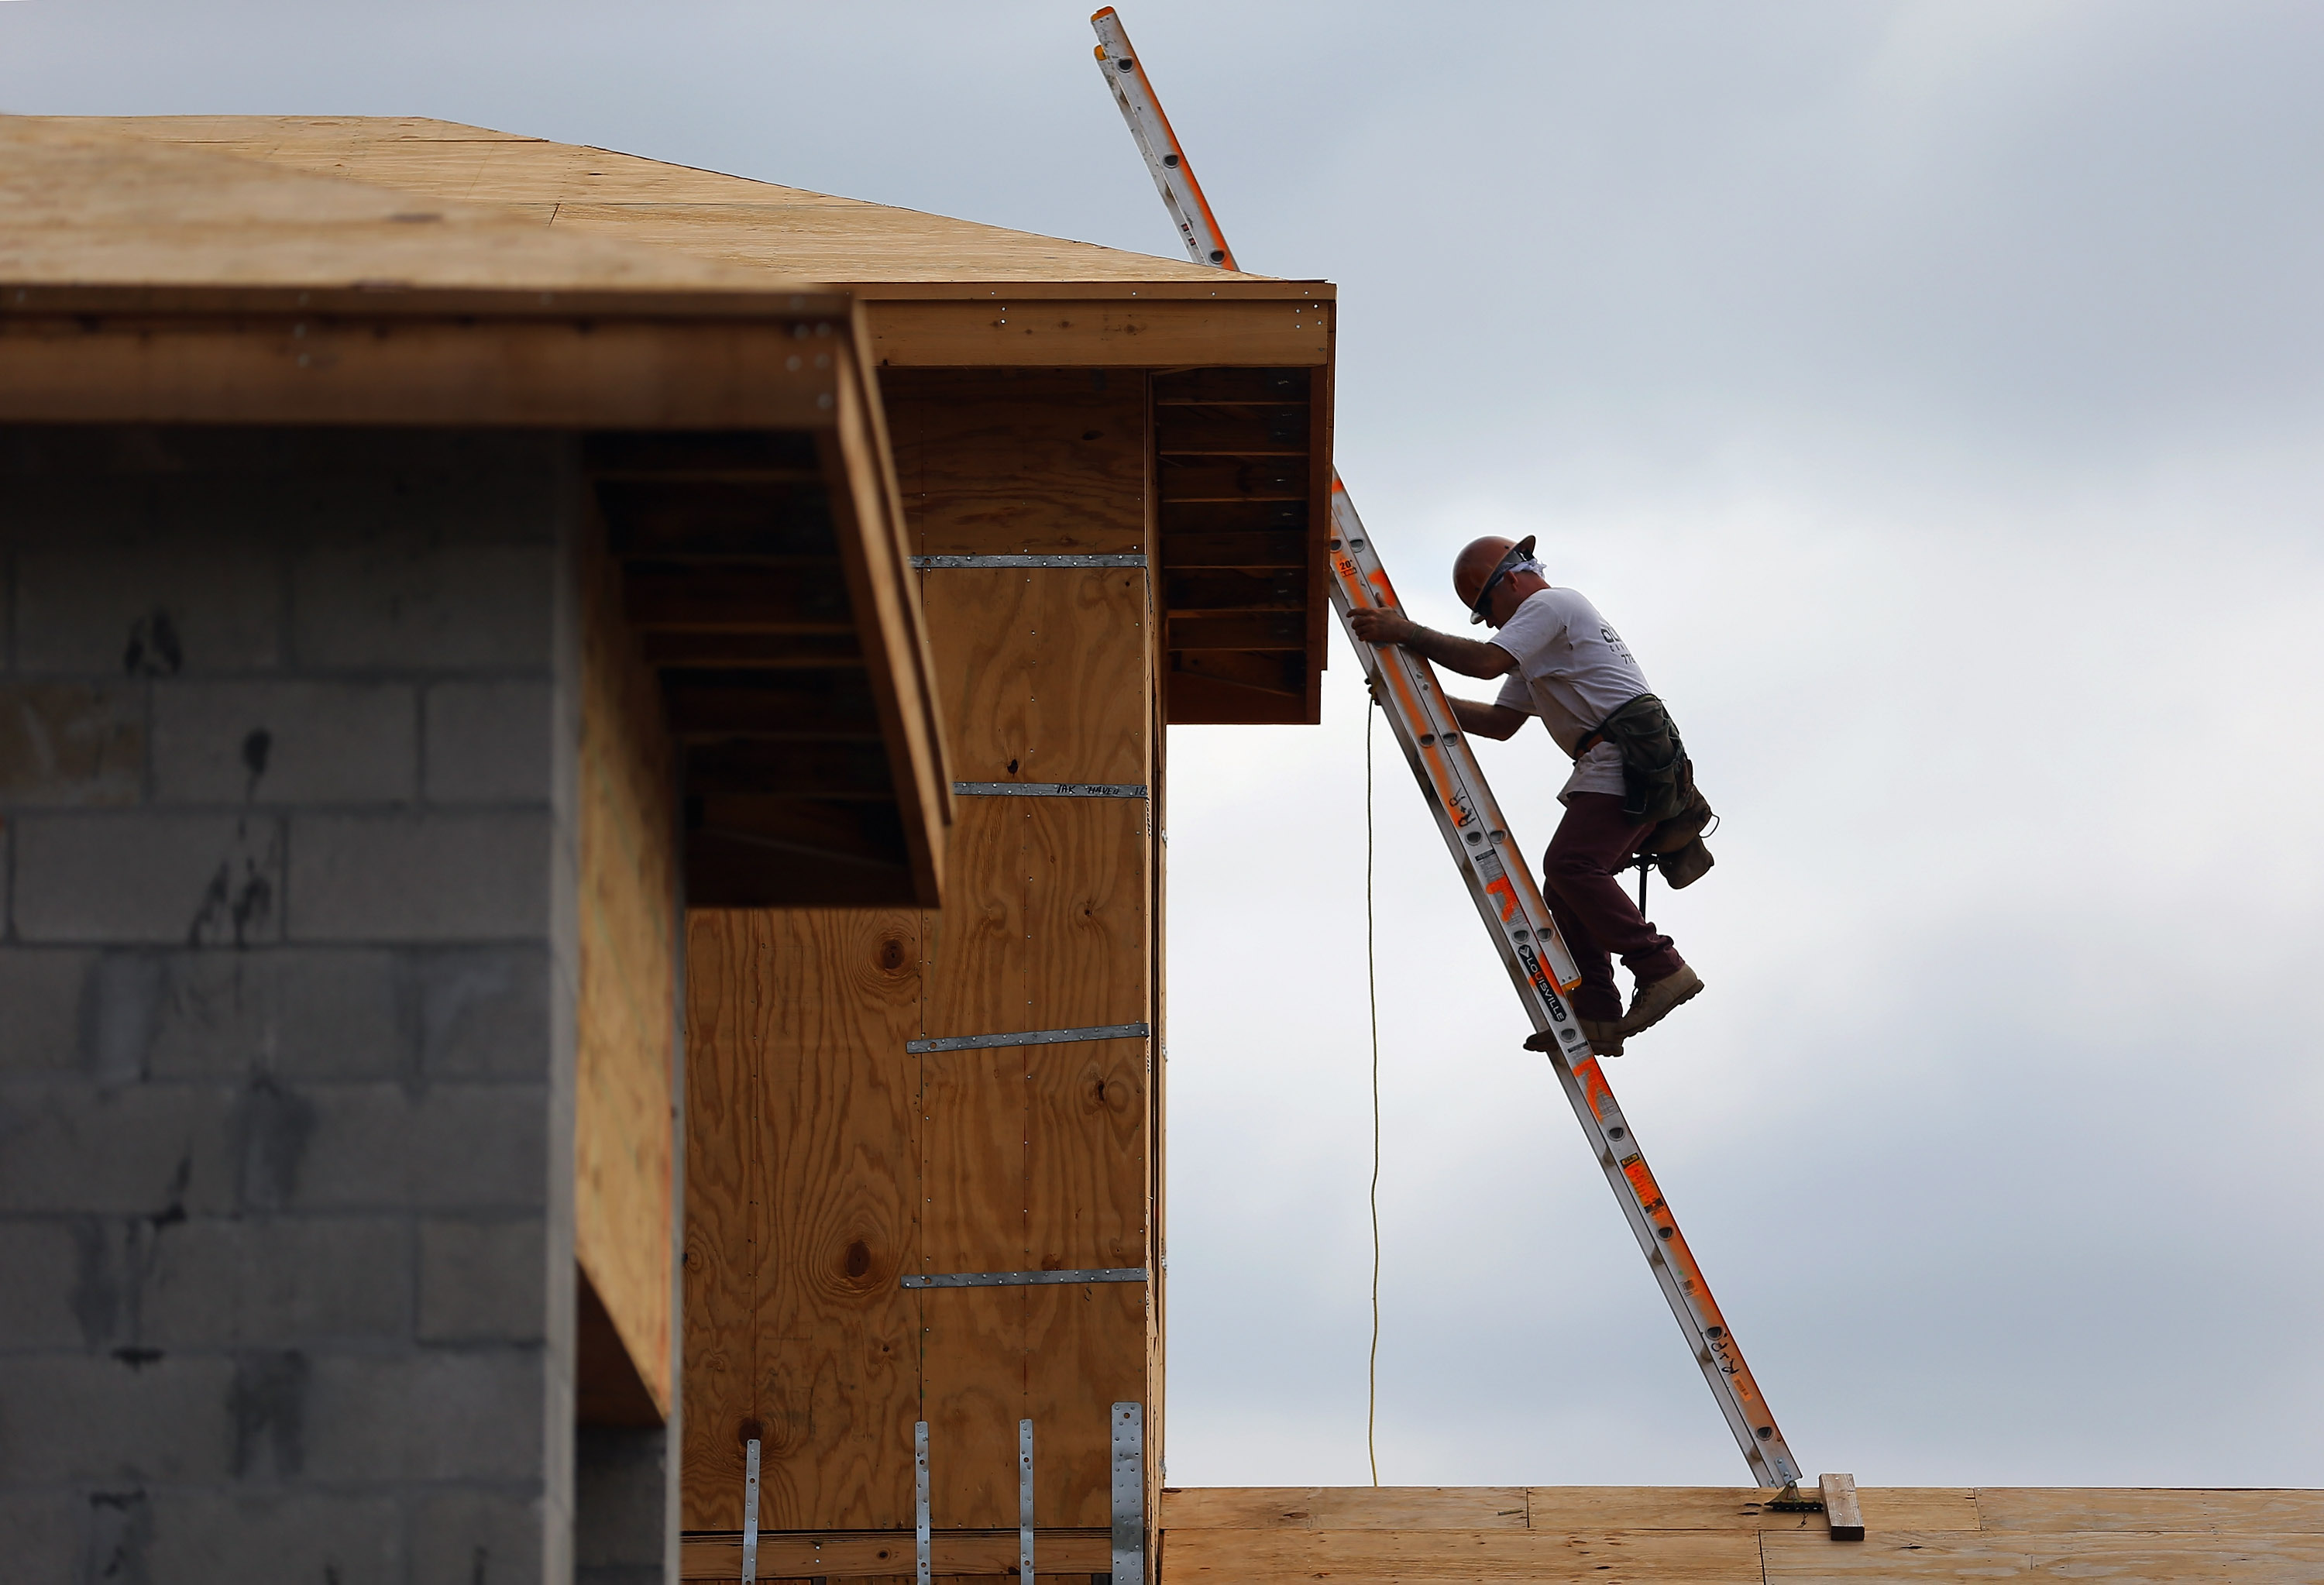 A construction worker climbs on the roof of a home.